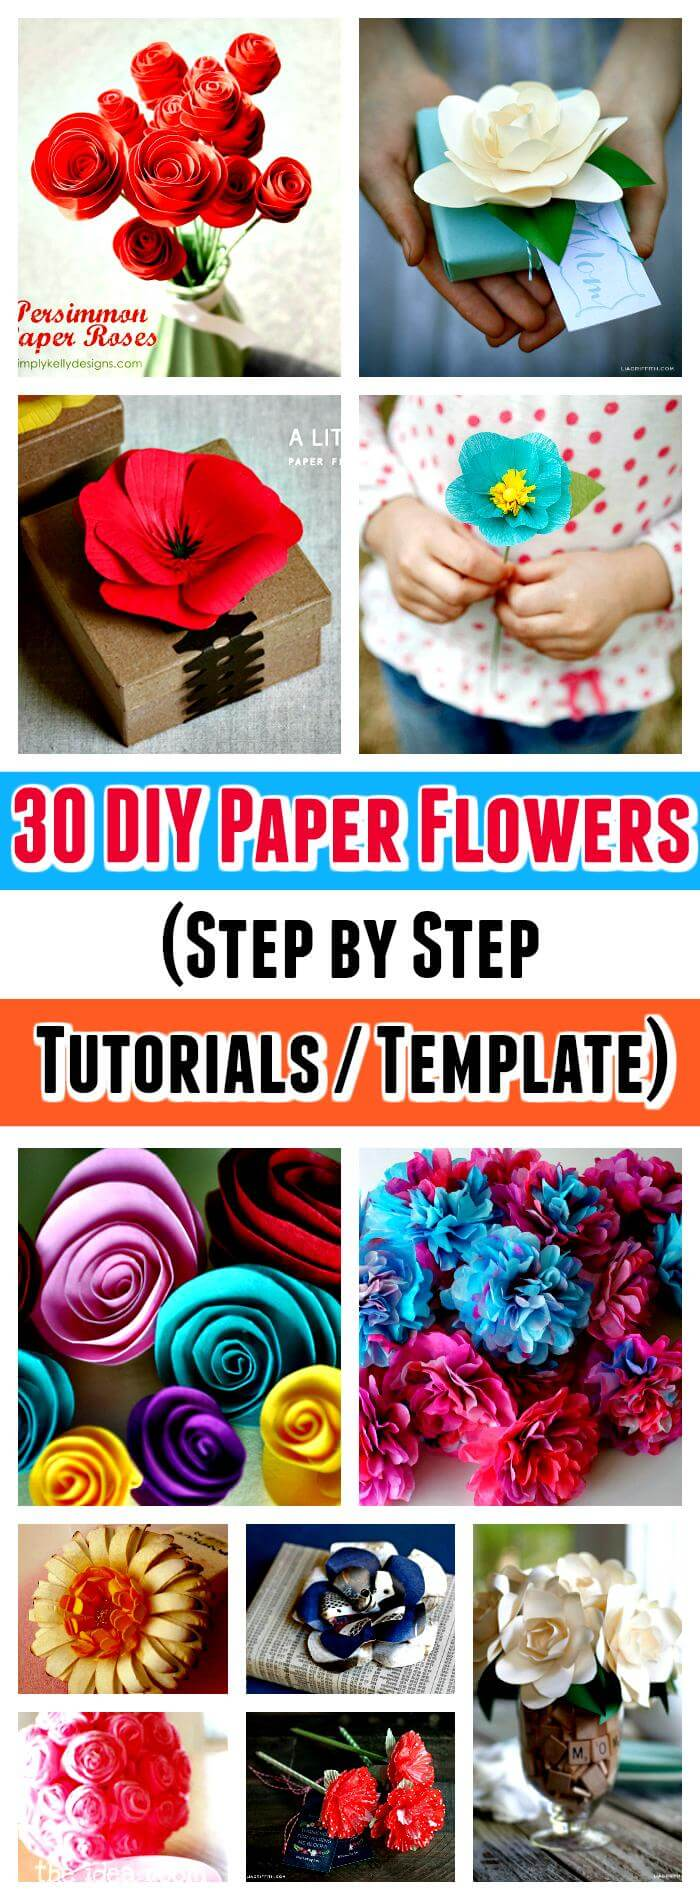 30 diy paper flowers step by step tutorials template for Diy paper roses step by step